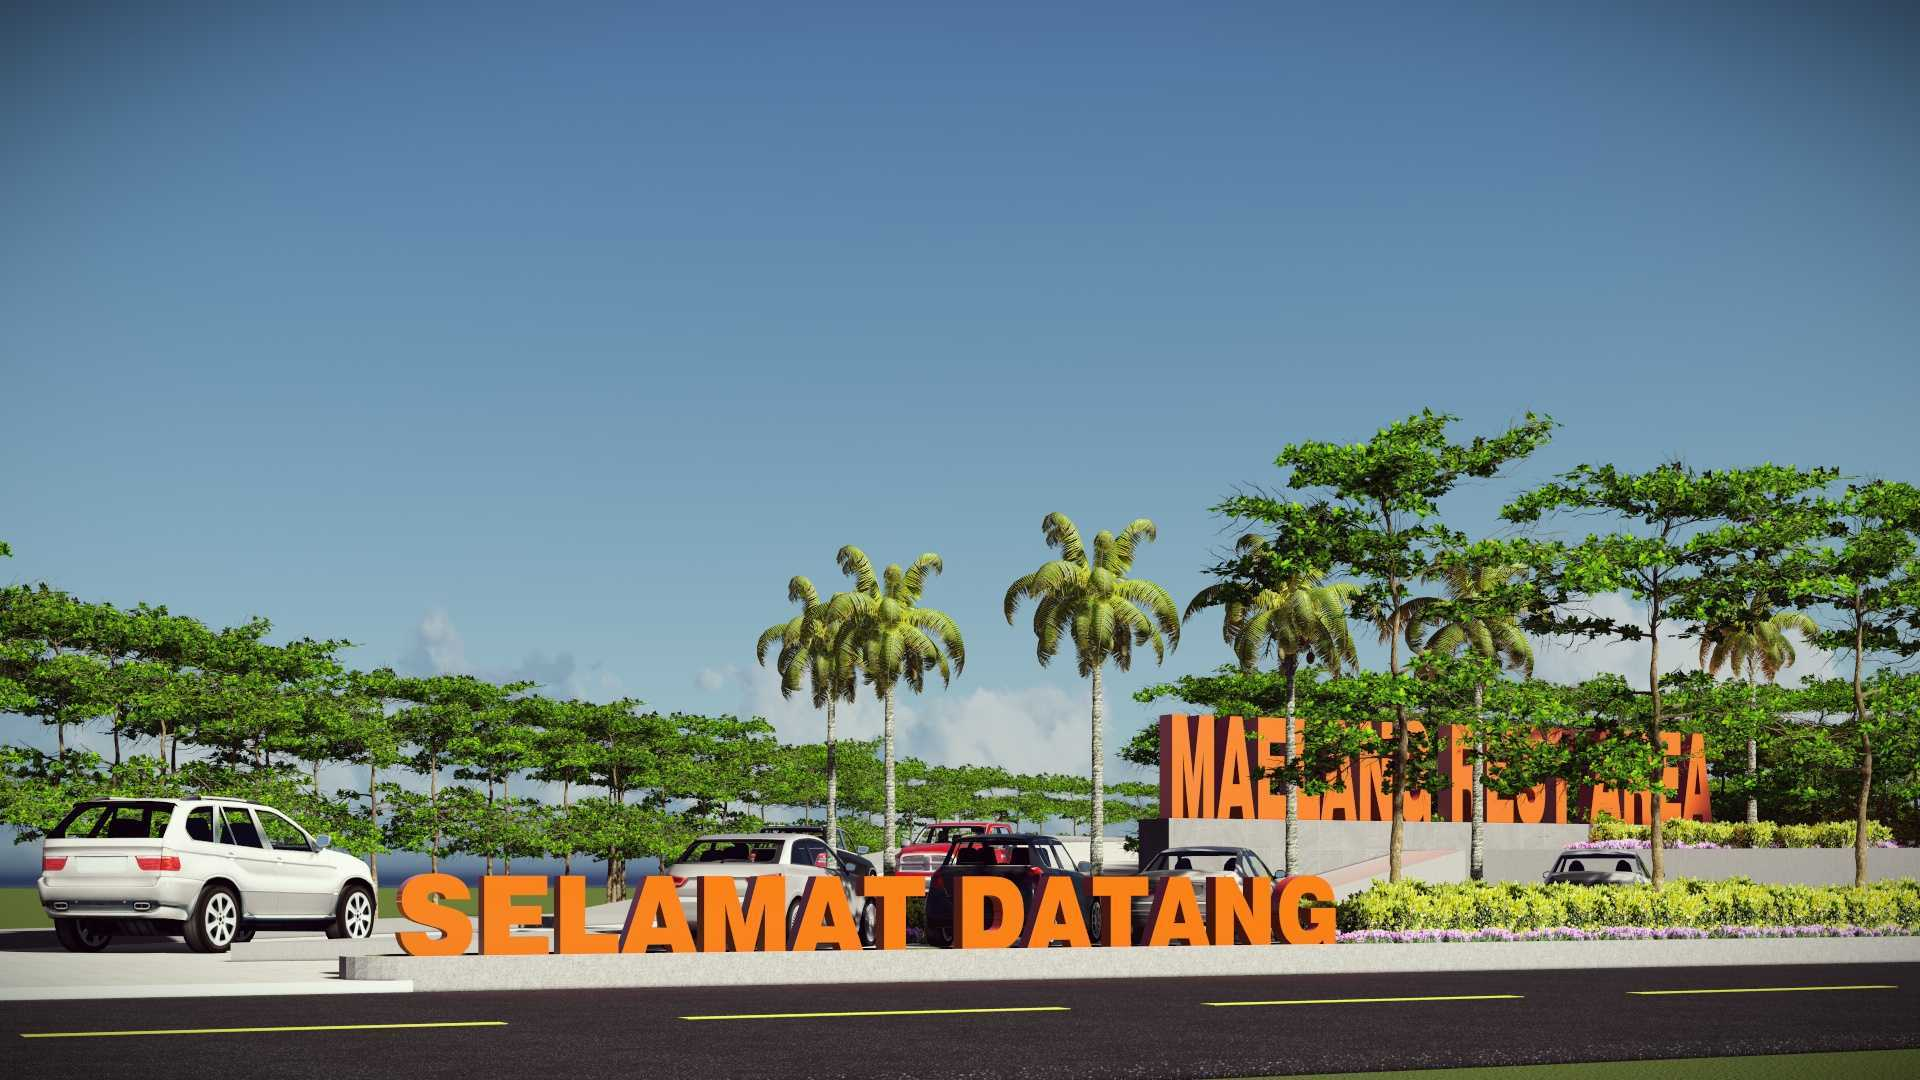 Mannor Architect Maelang Parking Area Gorontalo, Indonesia Gorontalo, Indonesia Maelang Rest Area Tropical  40744